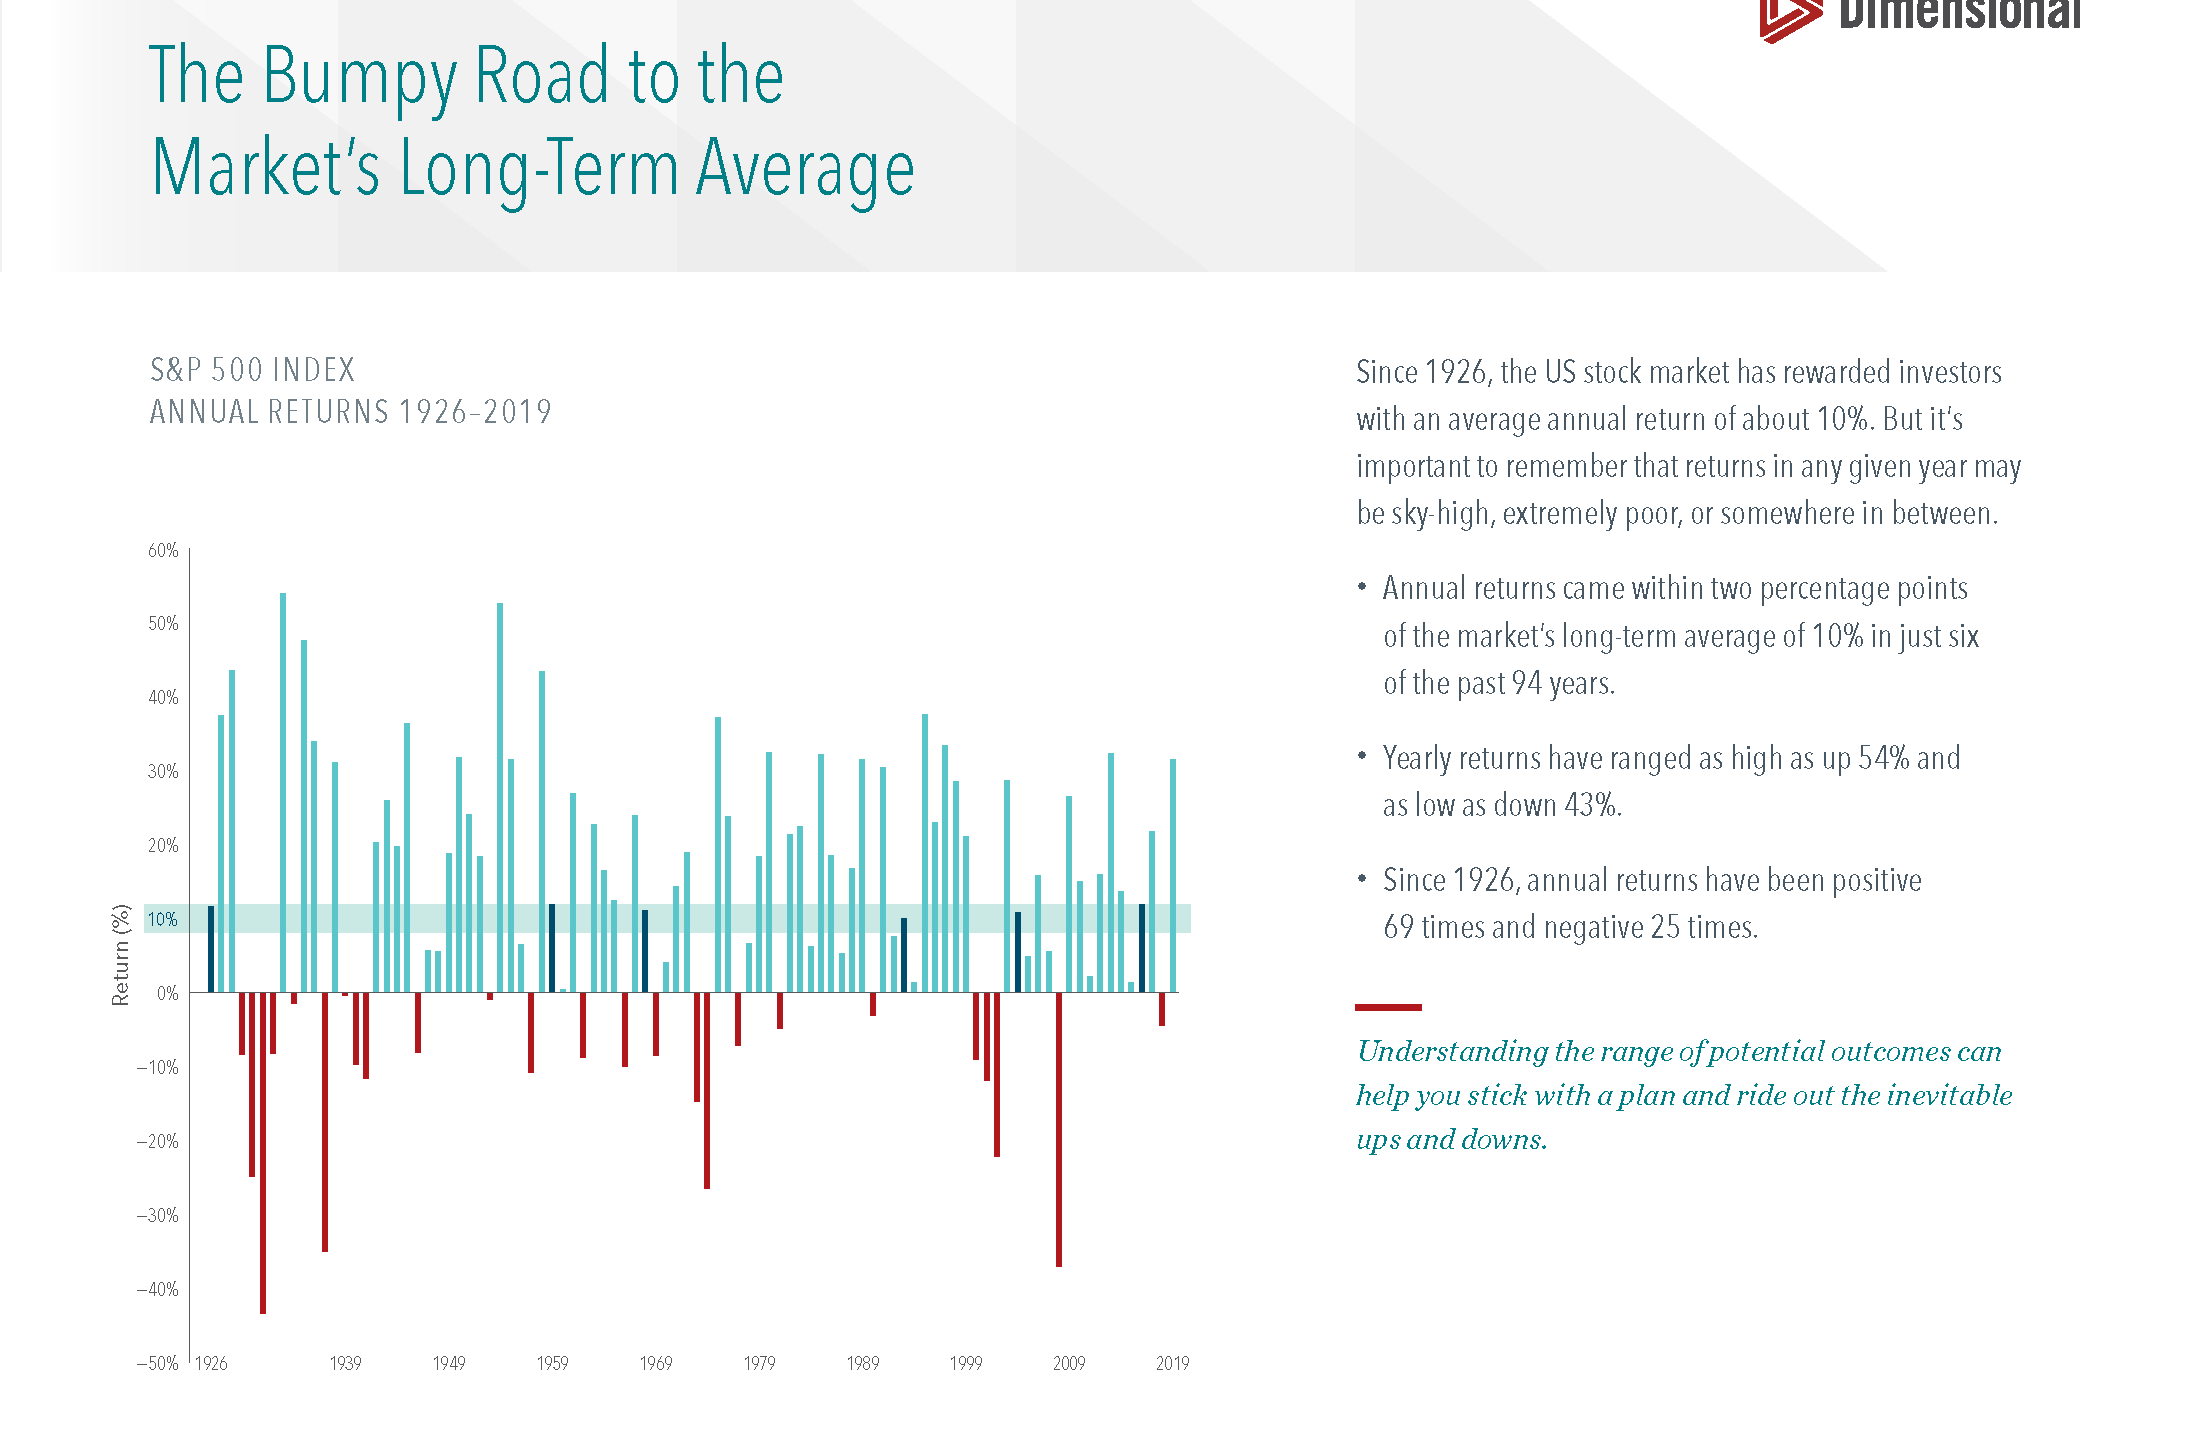 The Bumpy Road to the Market's Long-Term